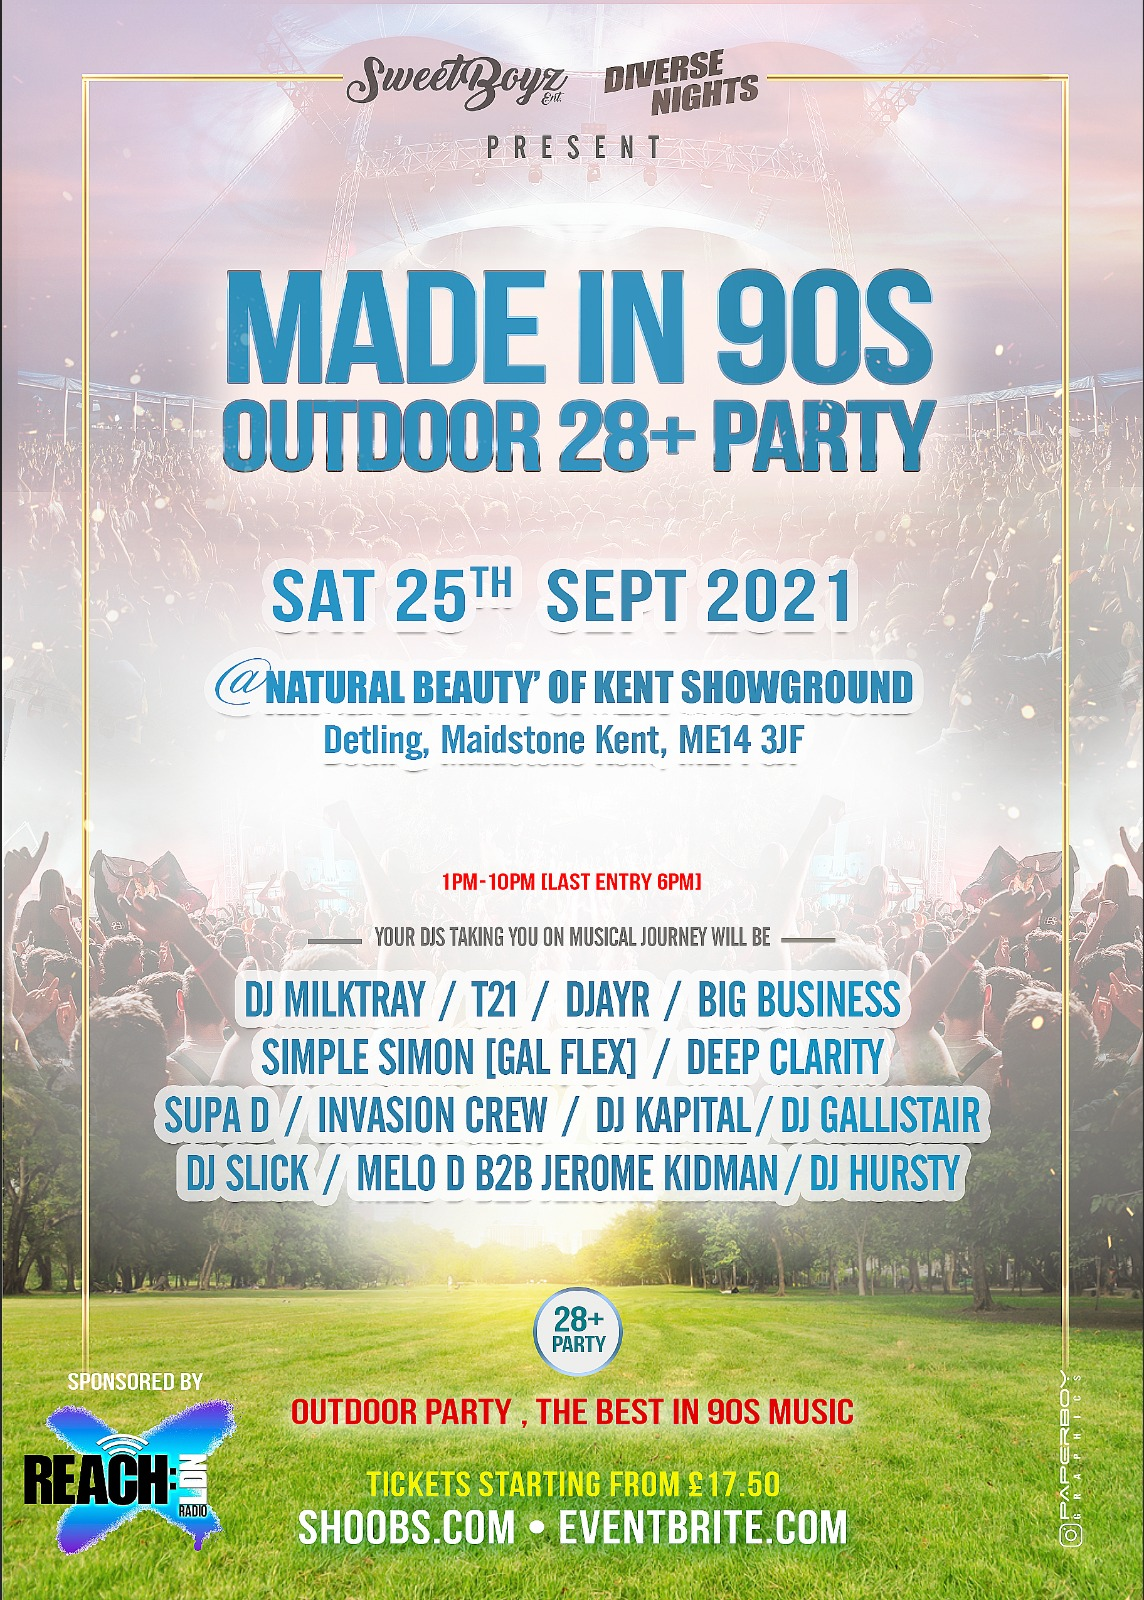 Made In 90s   Outdoor 28+ PARTY